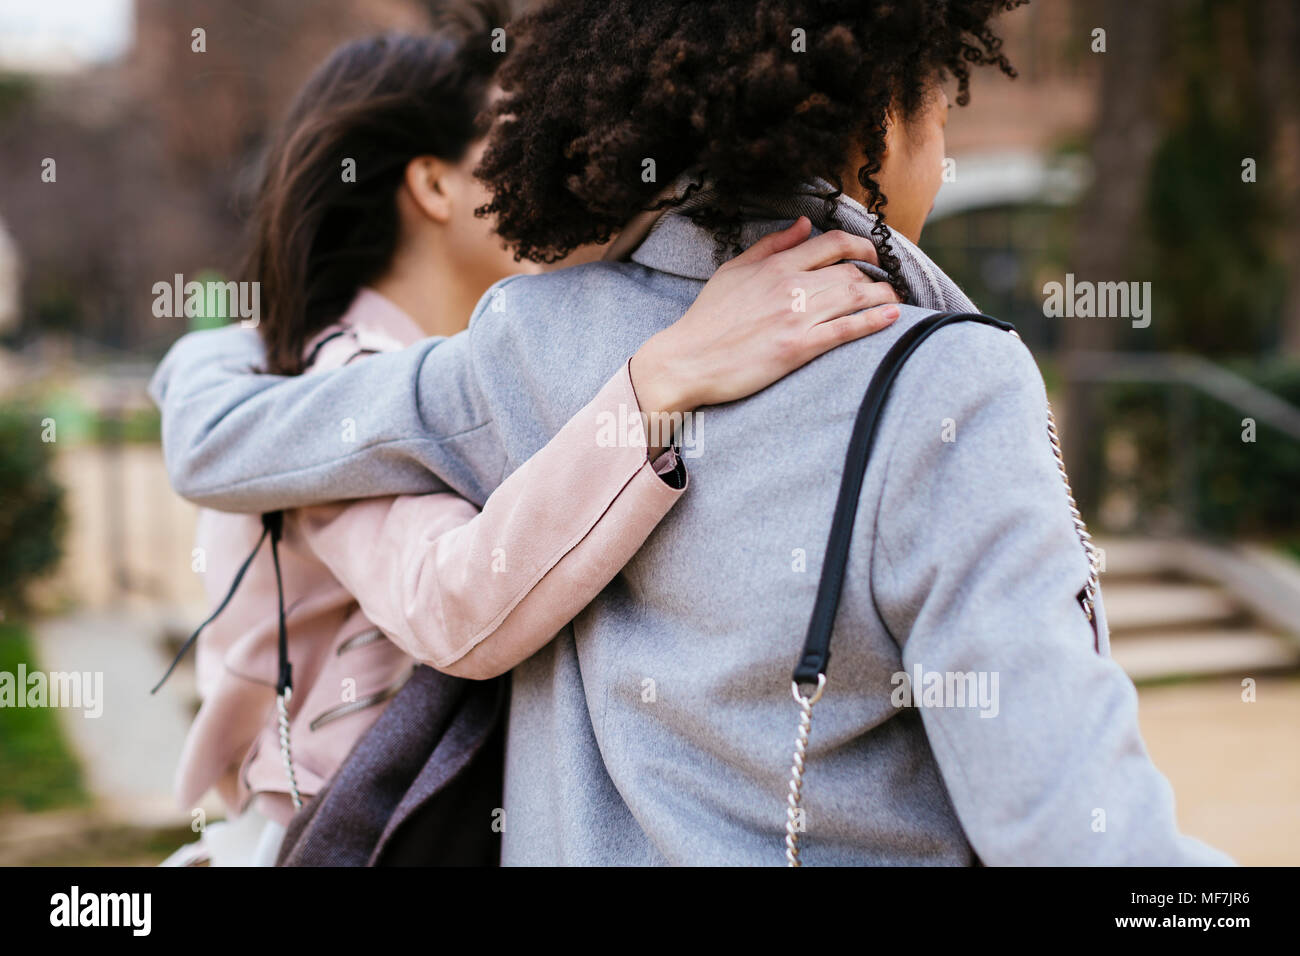 Spain, Barcelona, two women in city park embracing - Stock Image